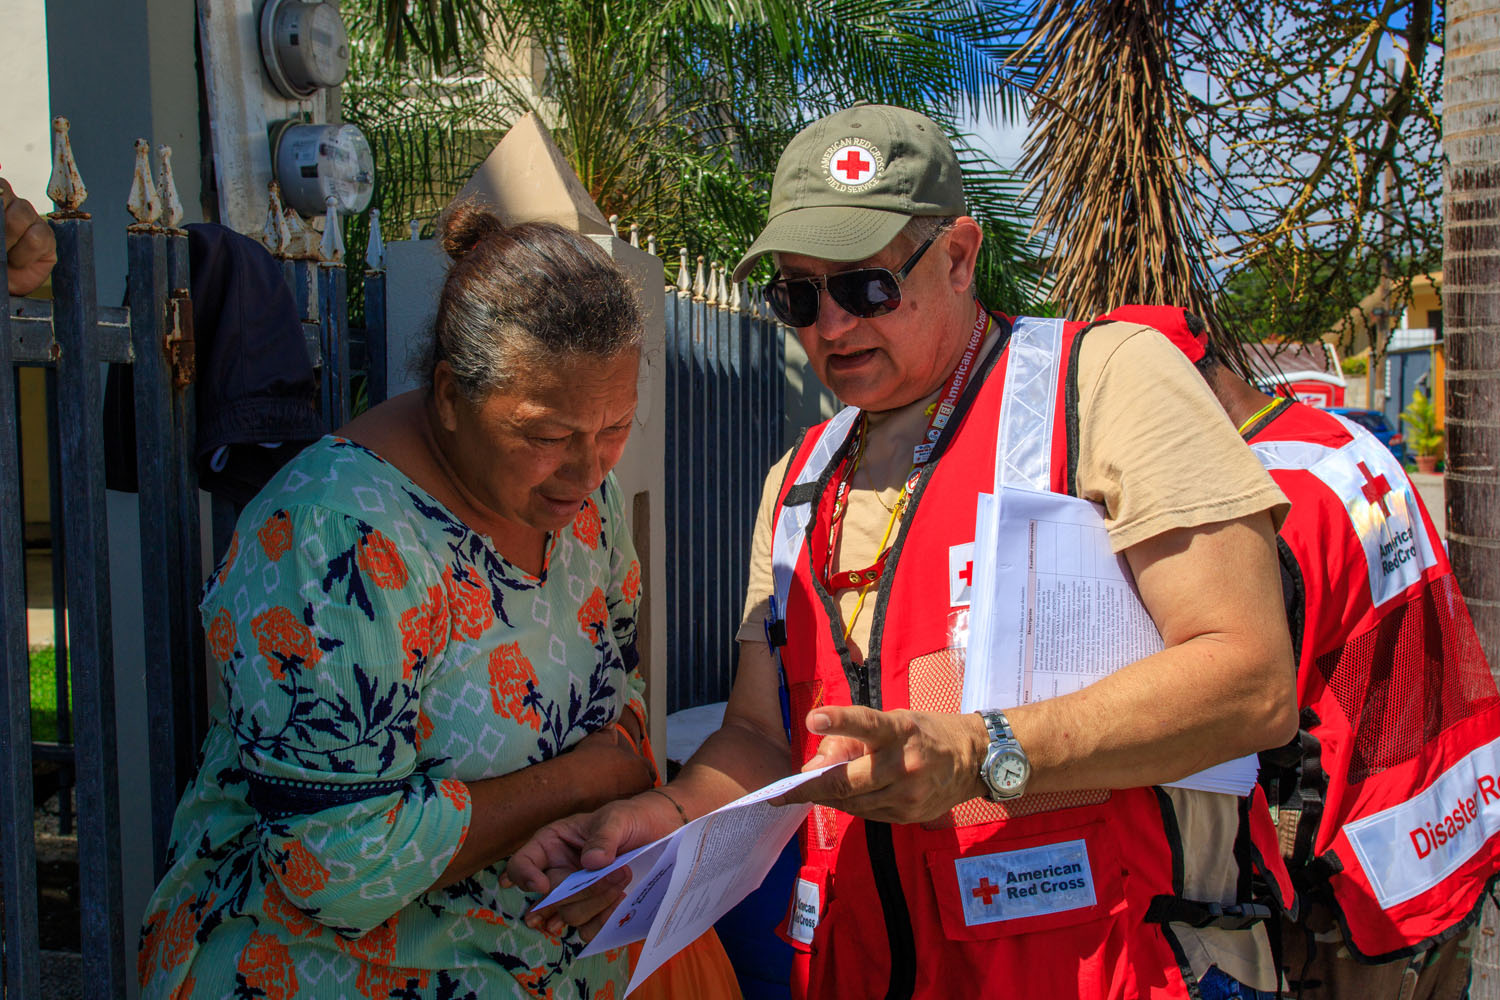 February 1, 2020. Yauco, Puerto Rico. Red Cross team member José, who is from the capital of Puerto Rico, gives Lucila information on how to prepare for future emergencies. Photo by Isaac León/American Red Cross